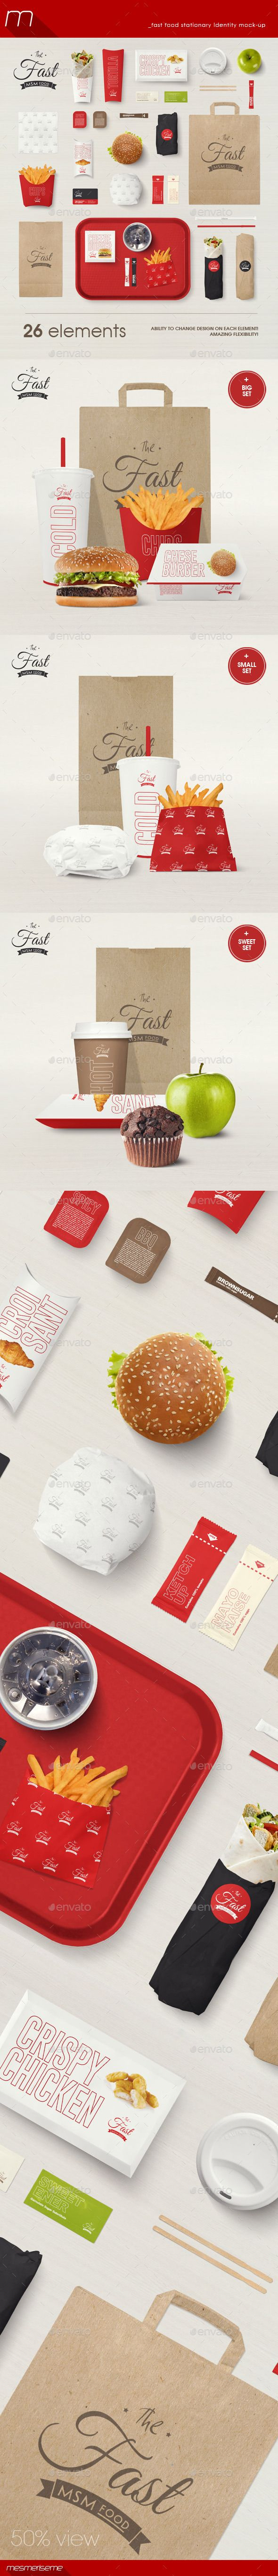 Fast Food Stationary Identity Mock-up | Download: http://graphicriver.net/item/fast-food-stationary-identity-mockup/9988270?ref=ksioks